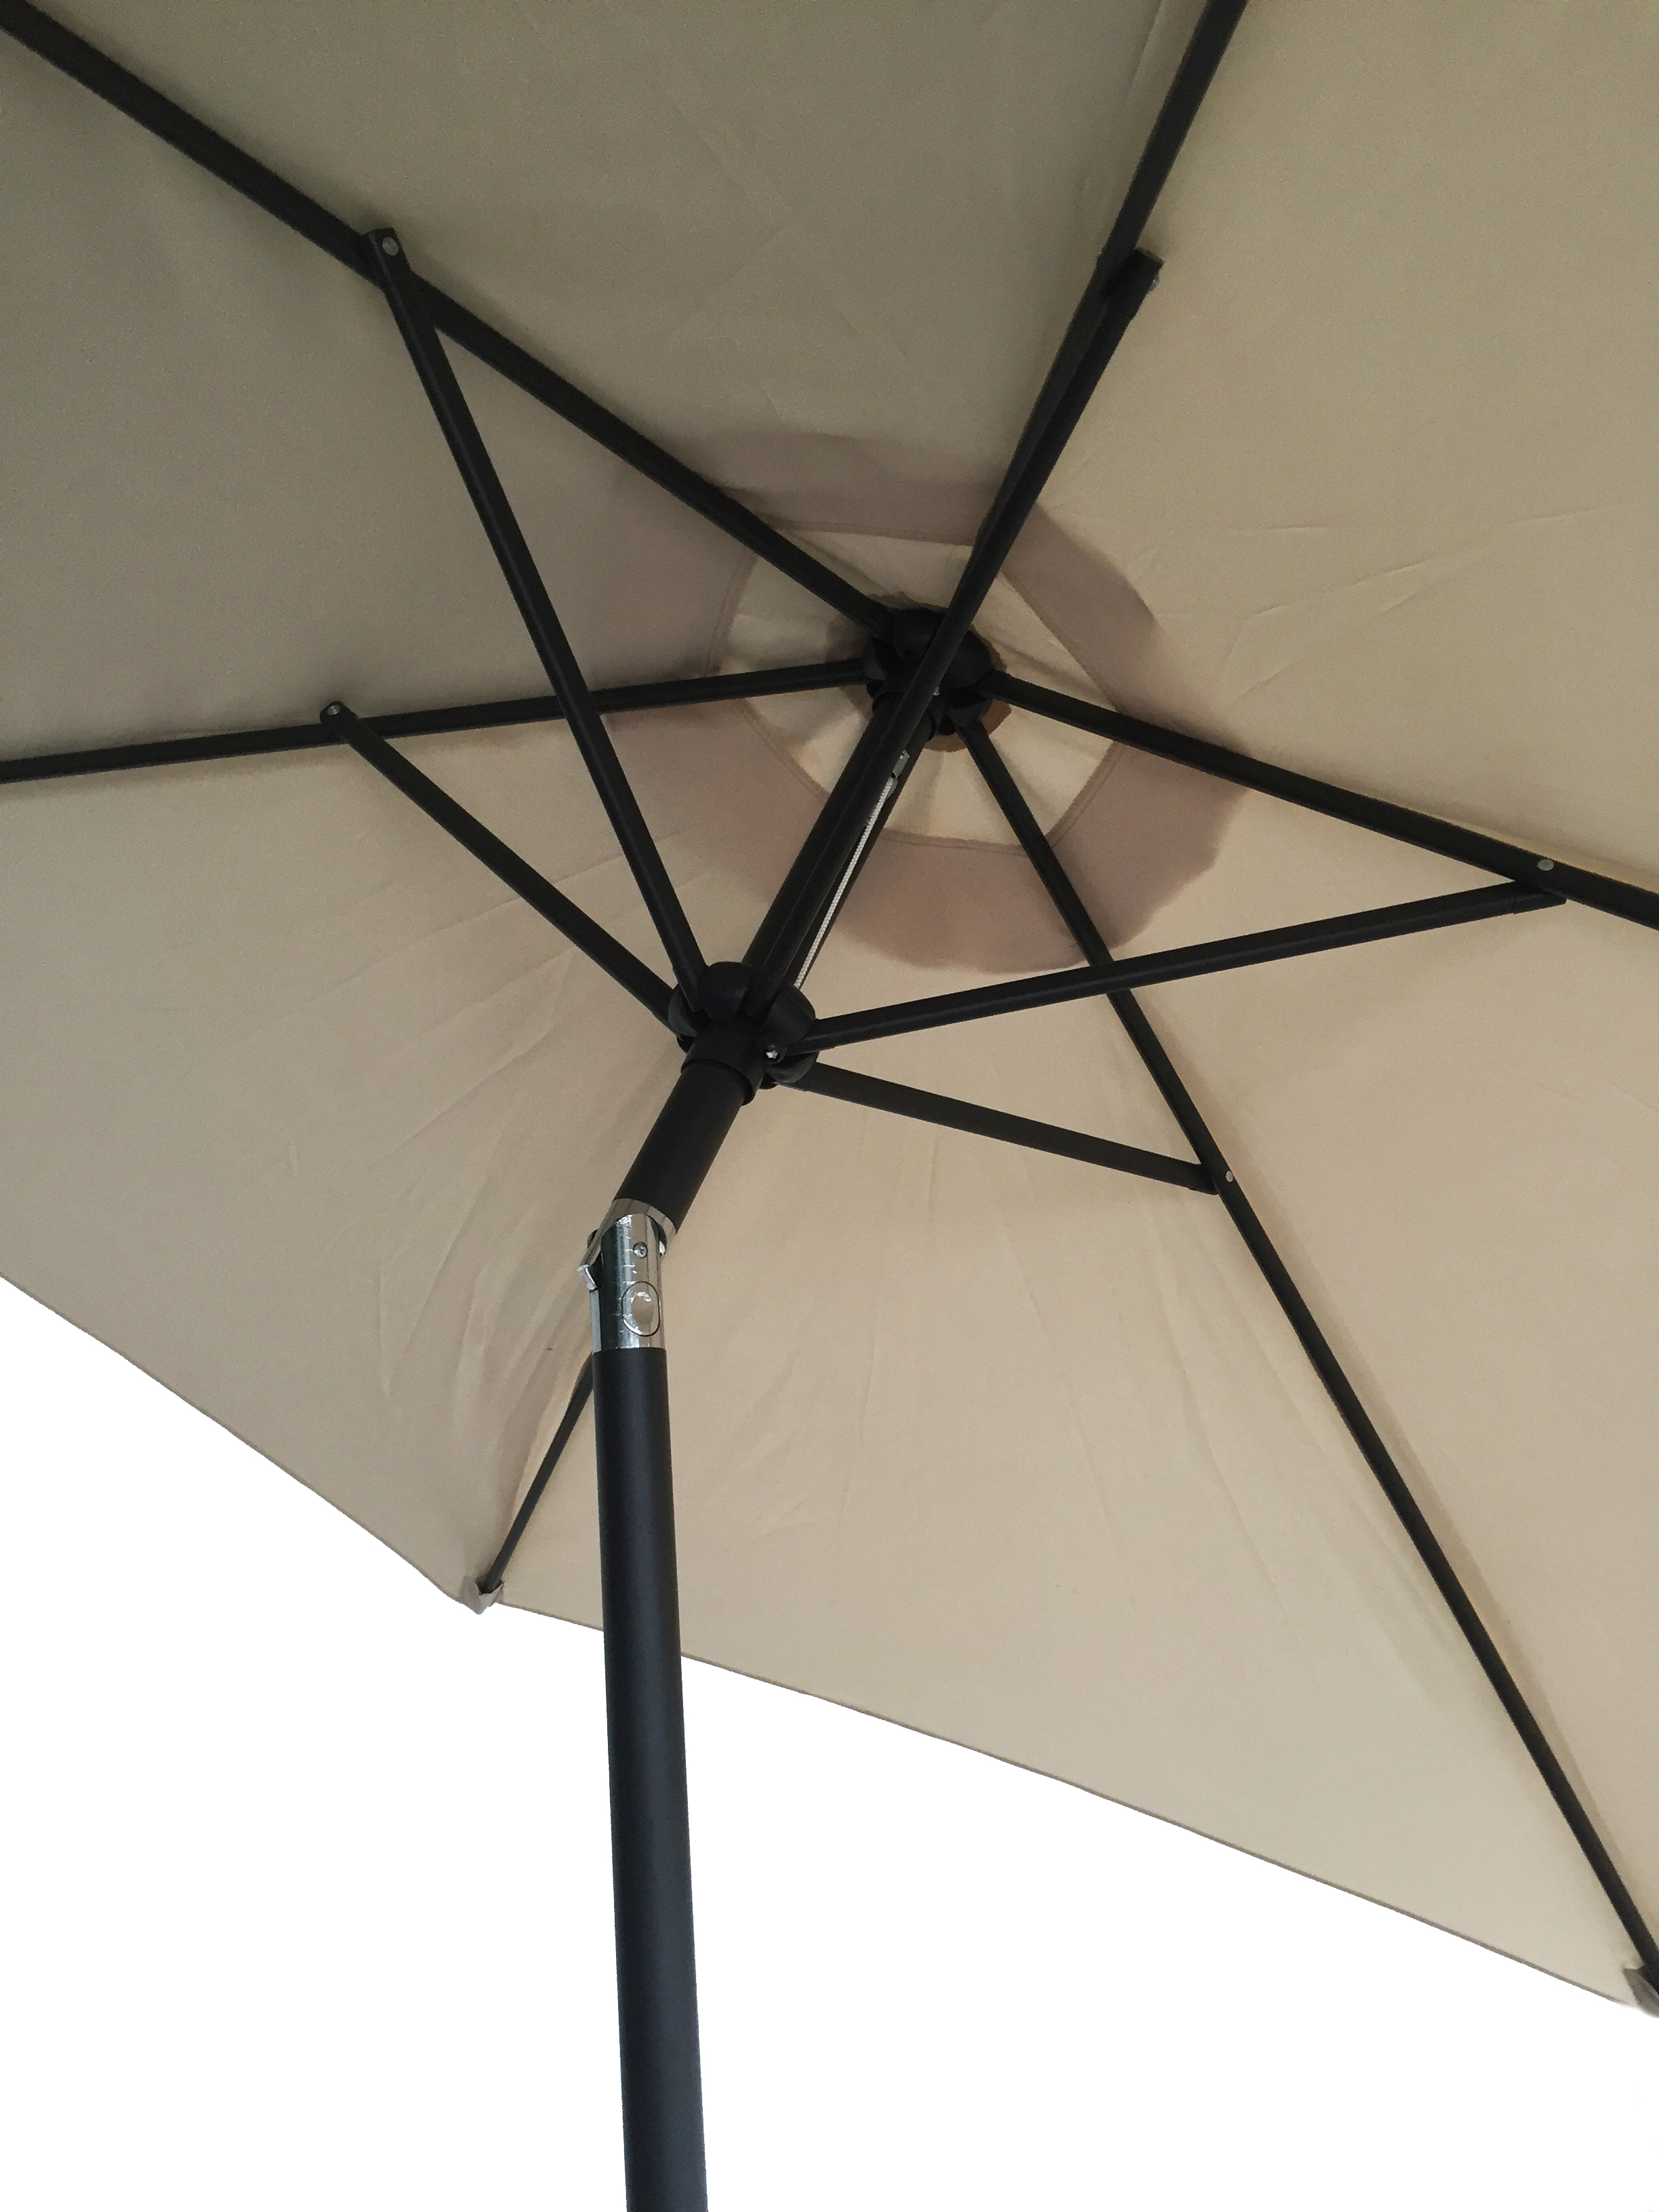 Patio Umbrella Crank Diagram: 9FT Aluminum Patio Umbrella Market Sun Shade Steel Tilt W